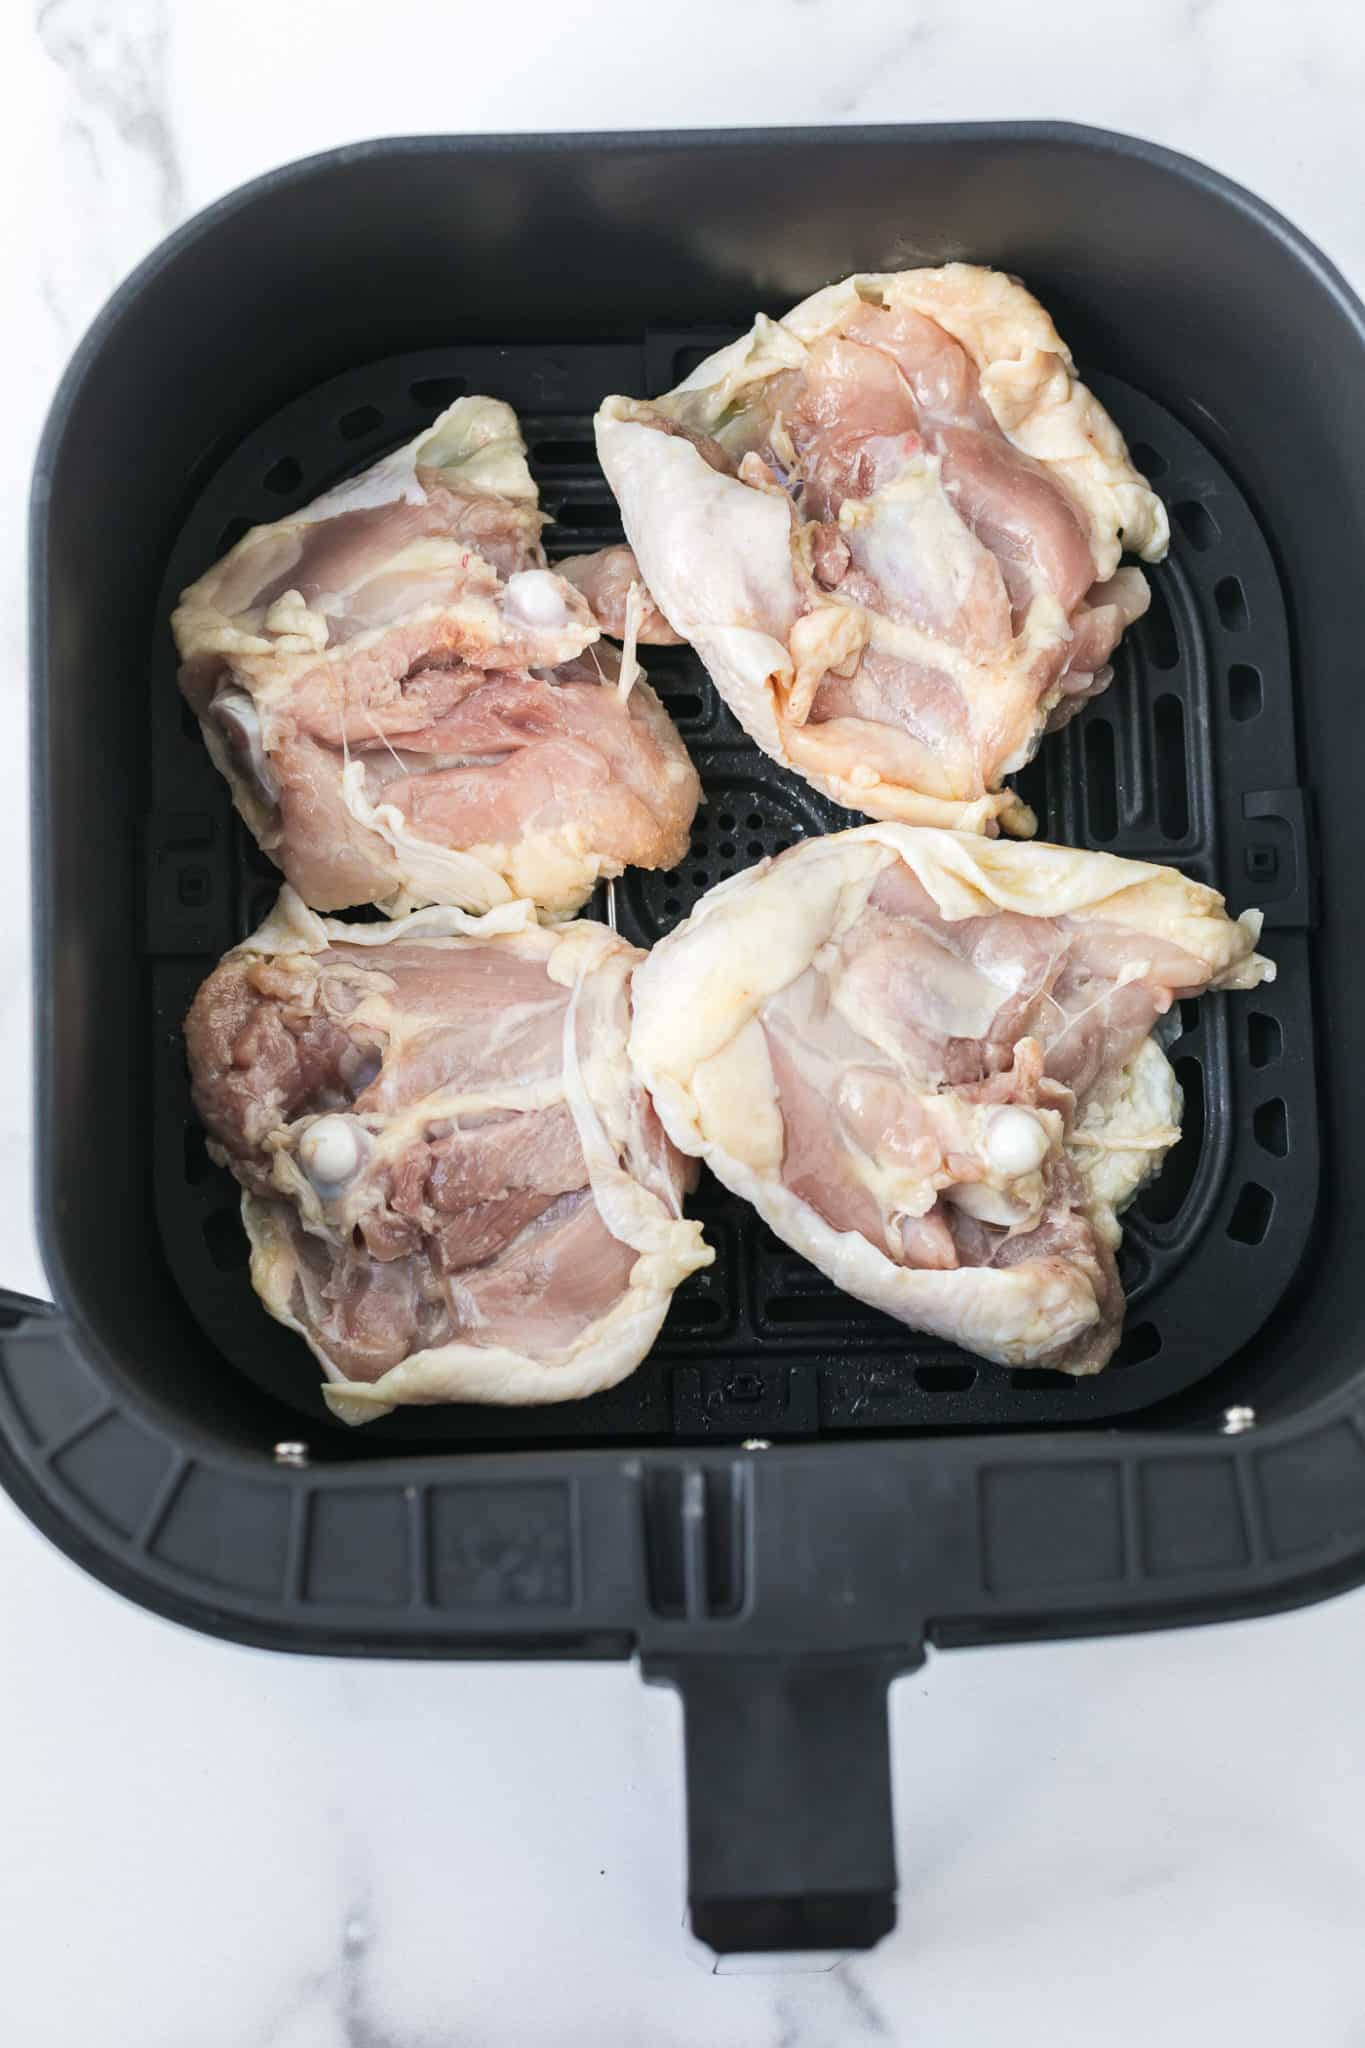 raw chicken thighs placed skin side down inside of an air fryer